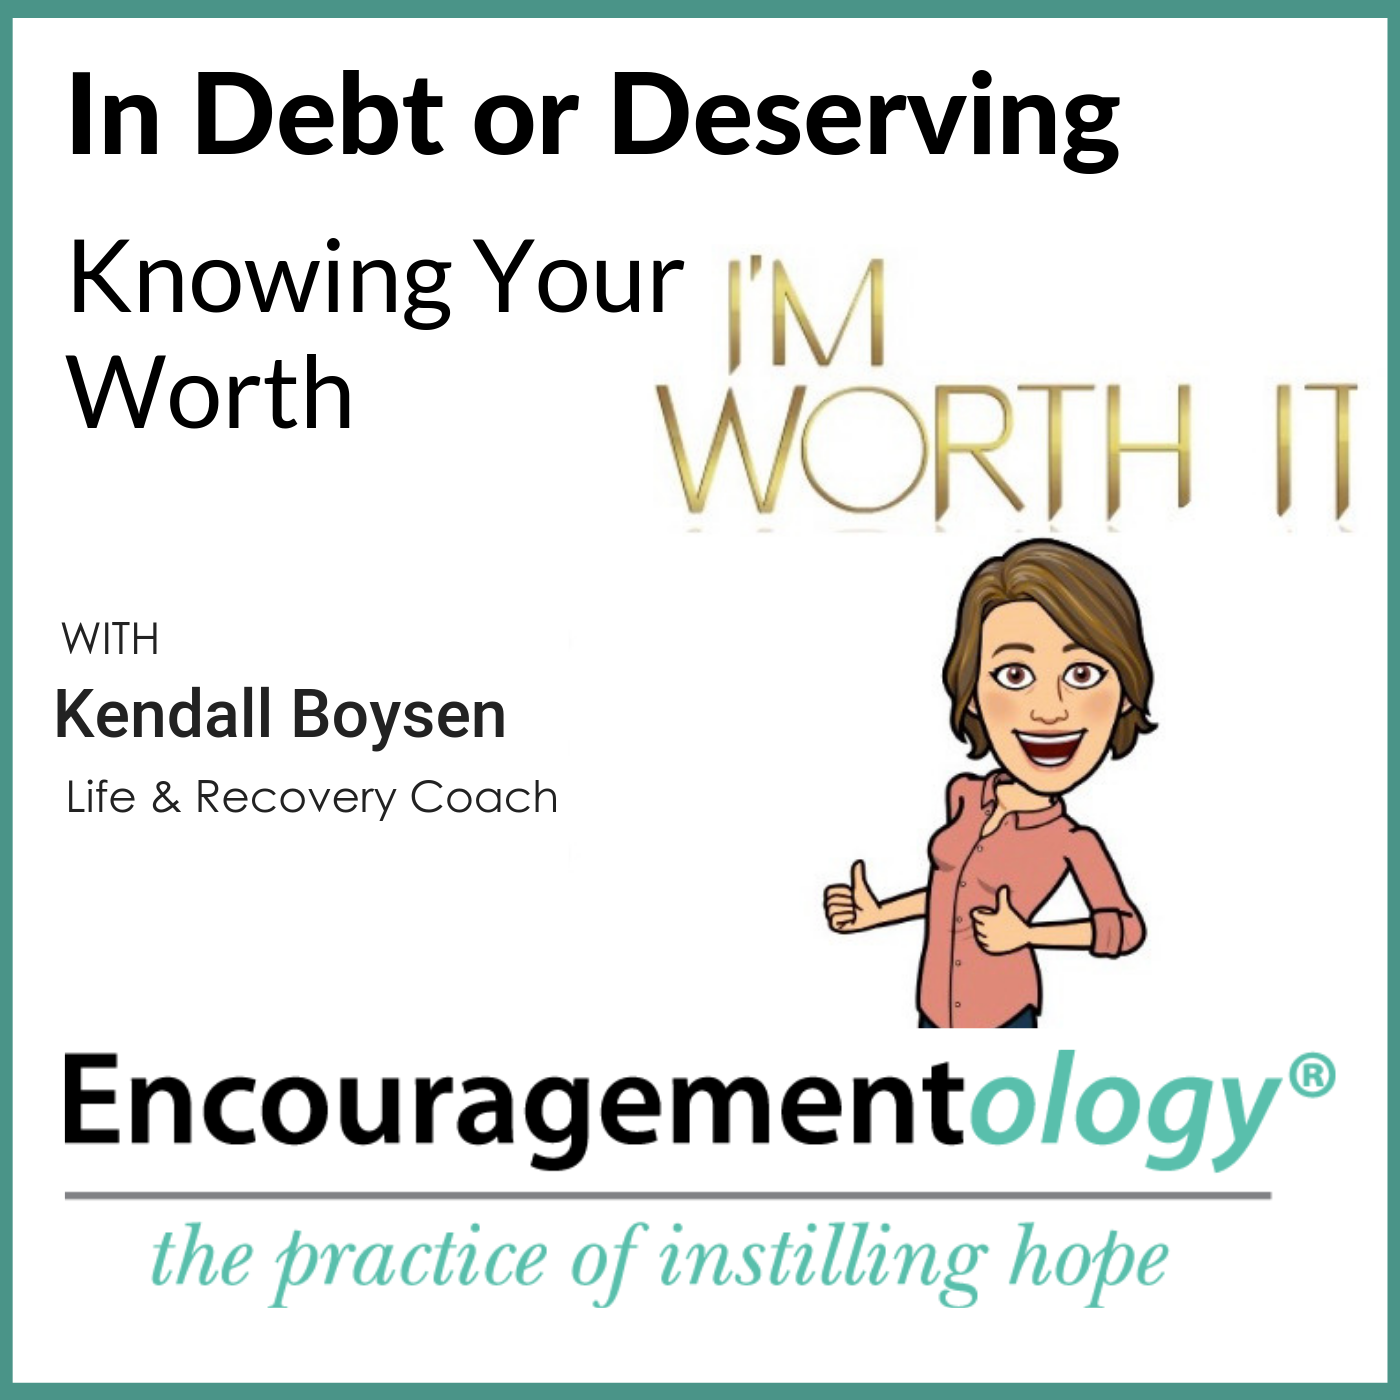 In Debt or Deserving, Knowing Your Worth